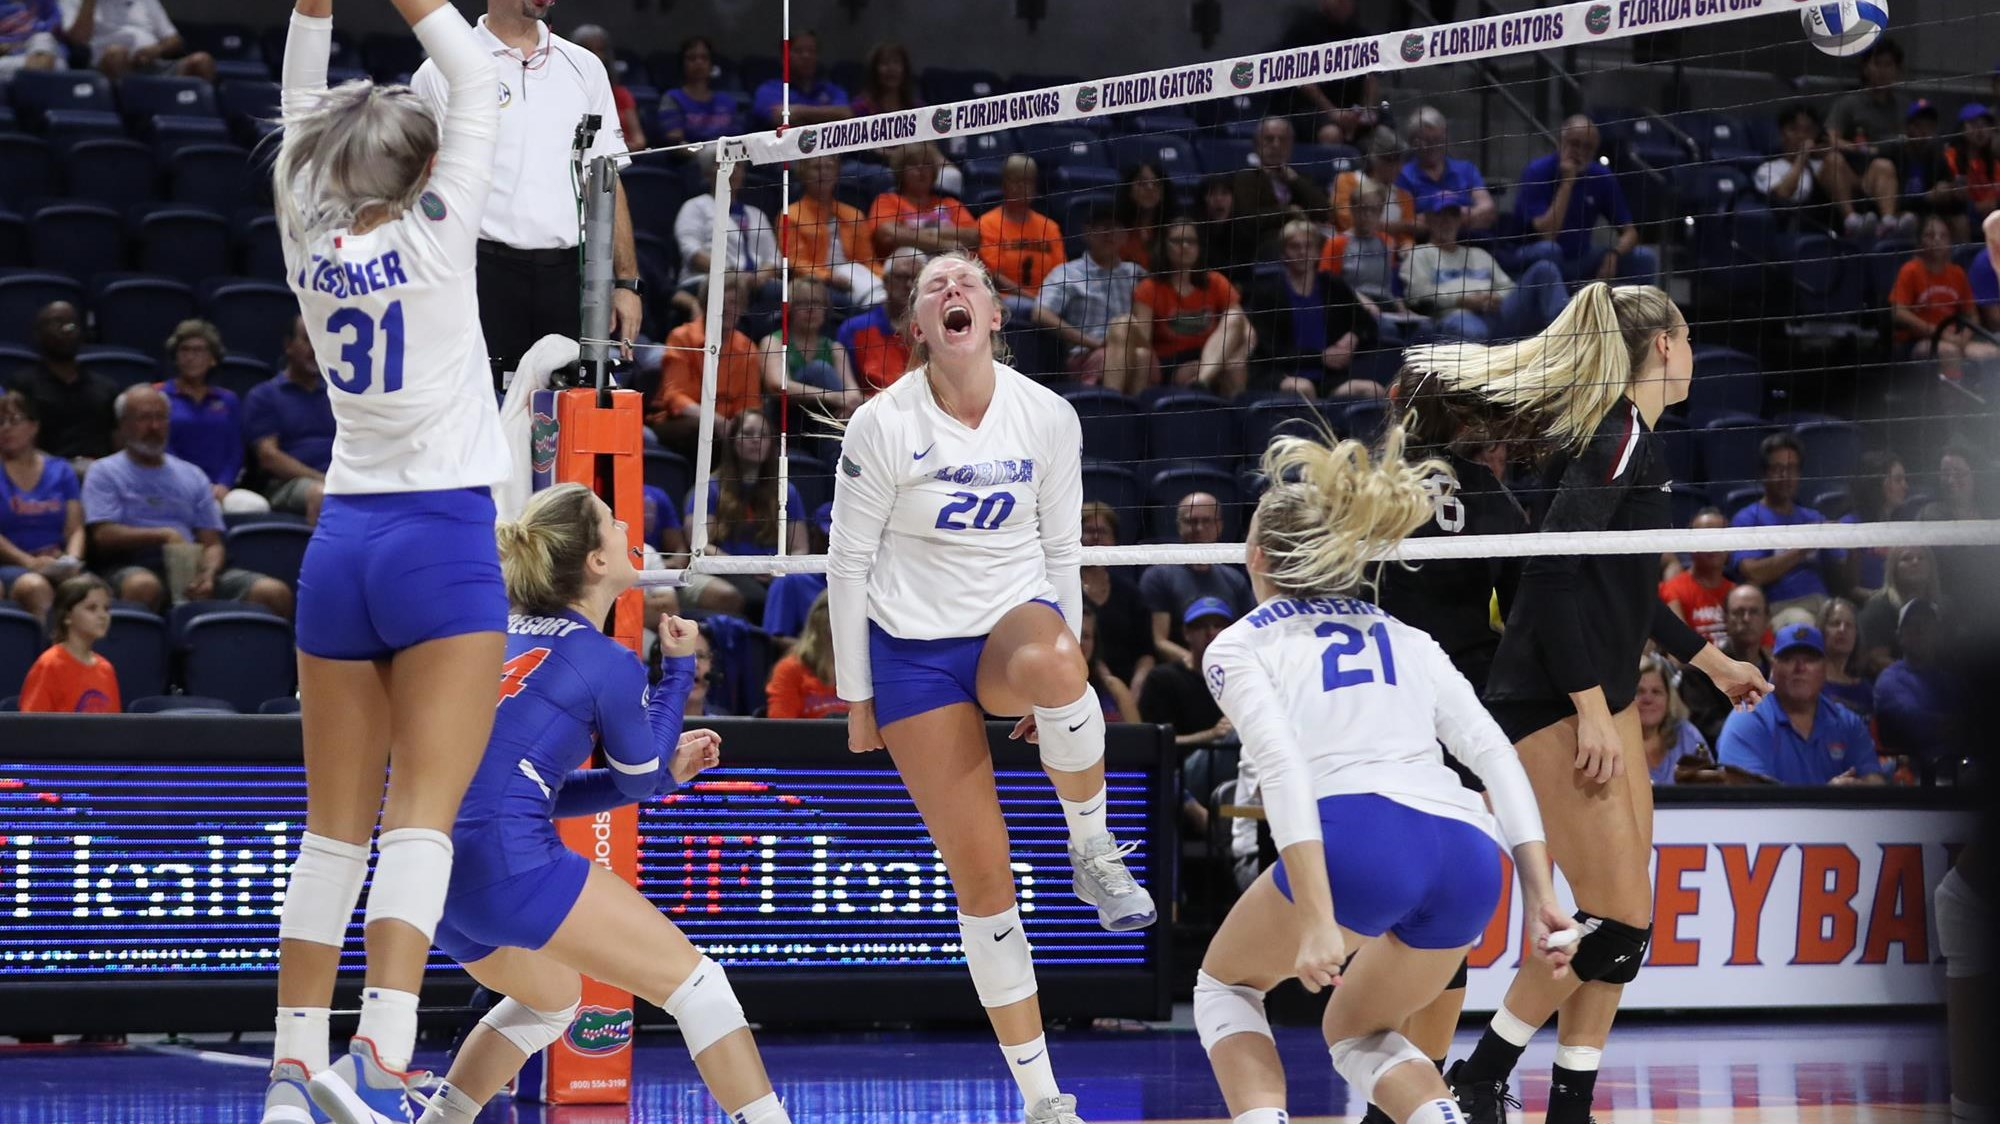 Riley Fischer Volleyball Florida Gators